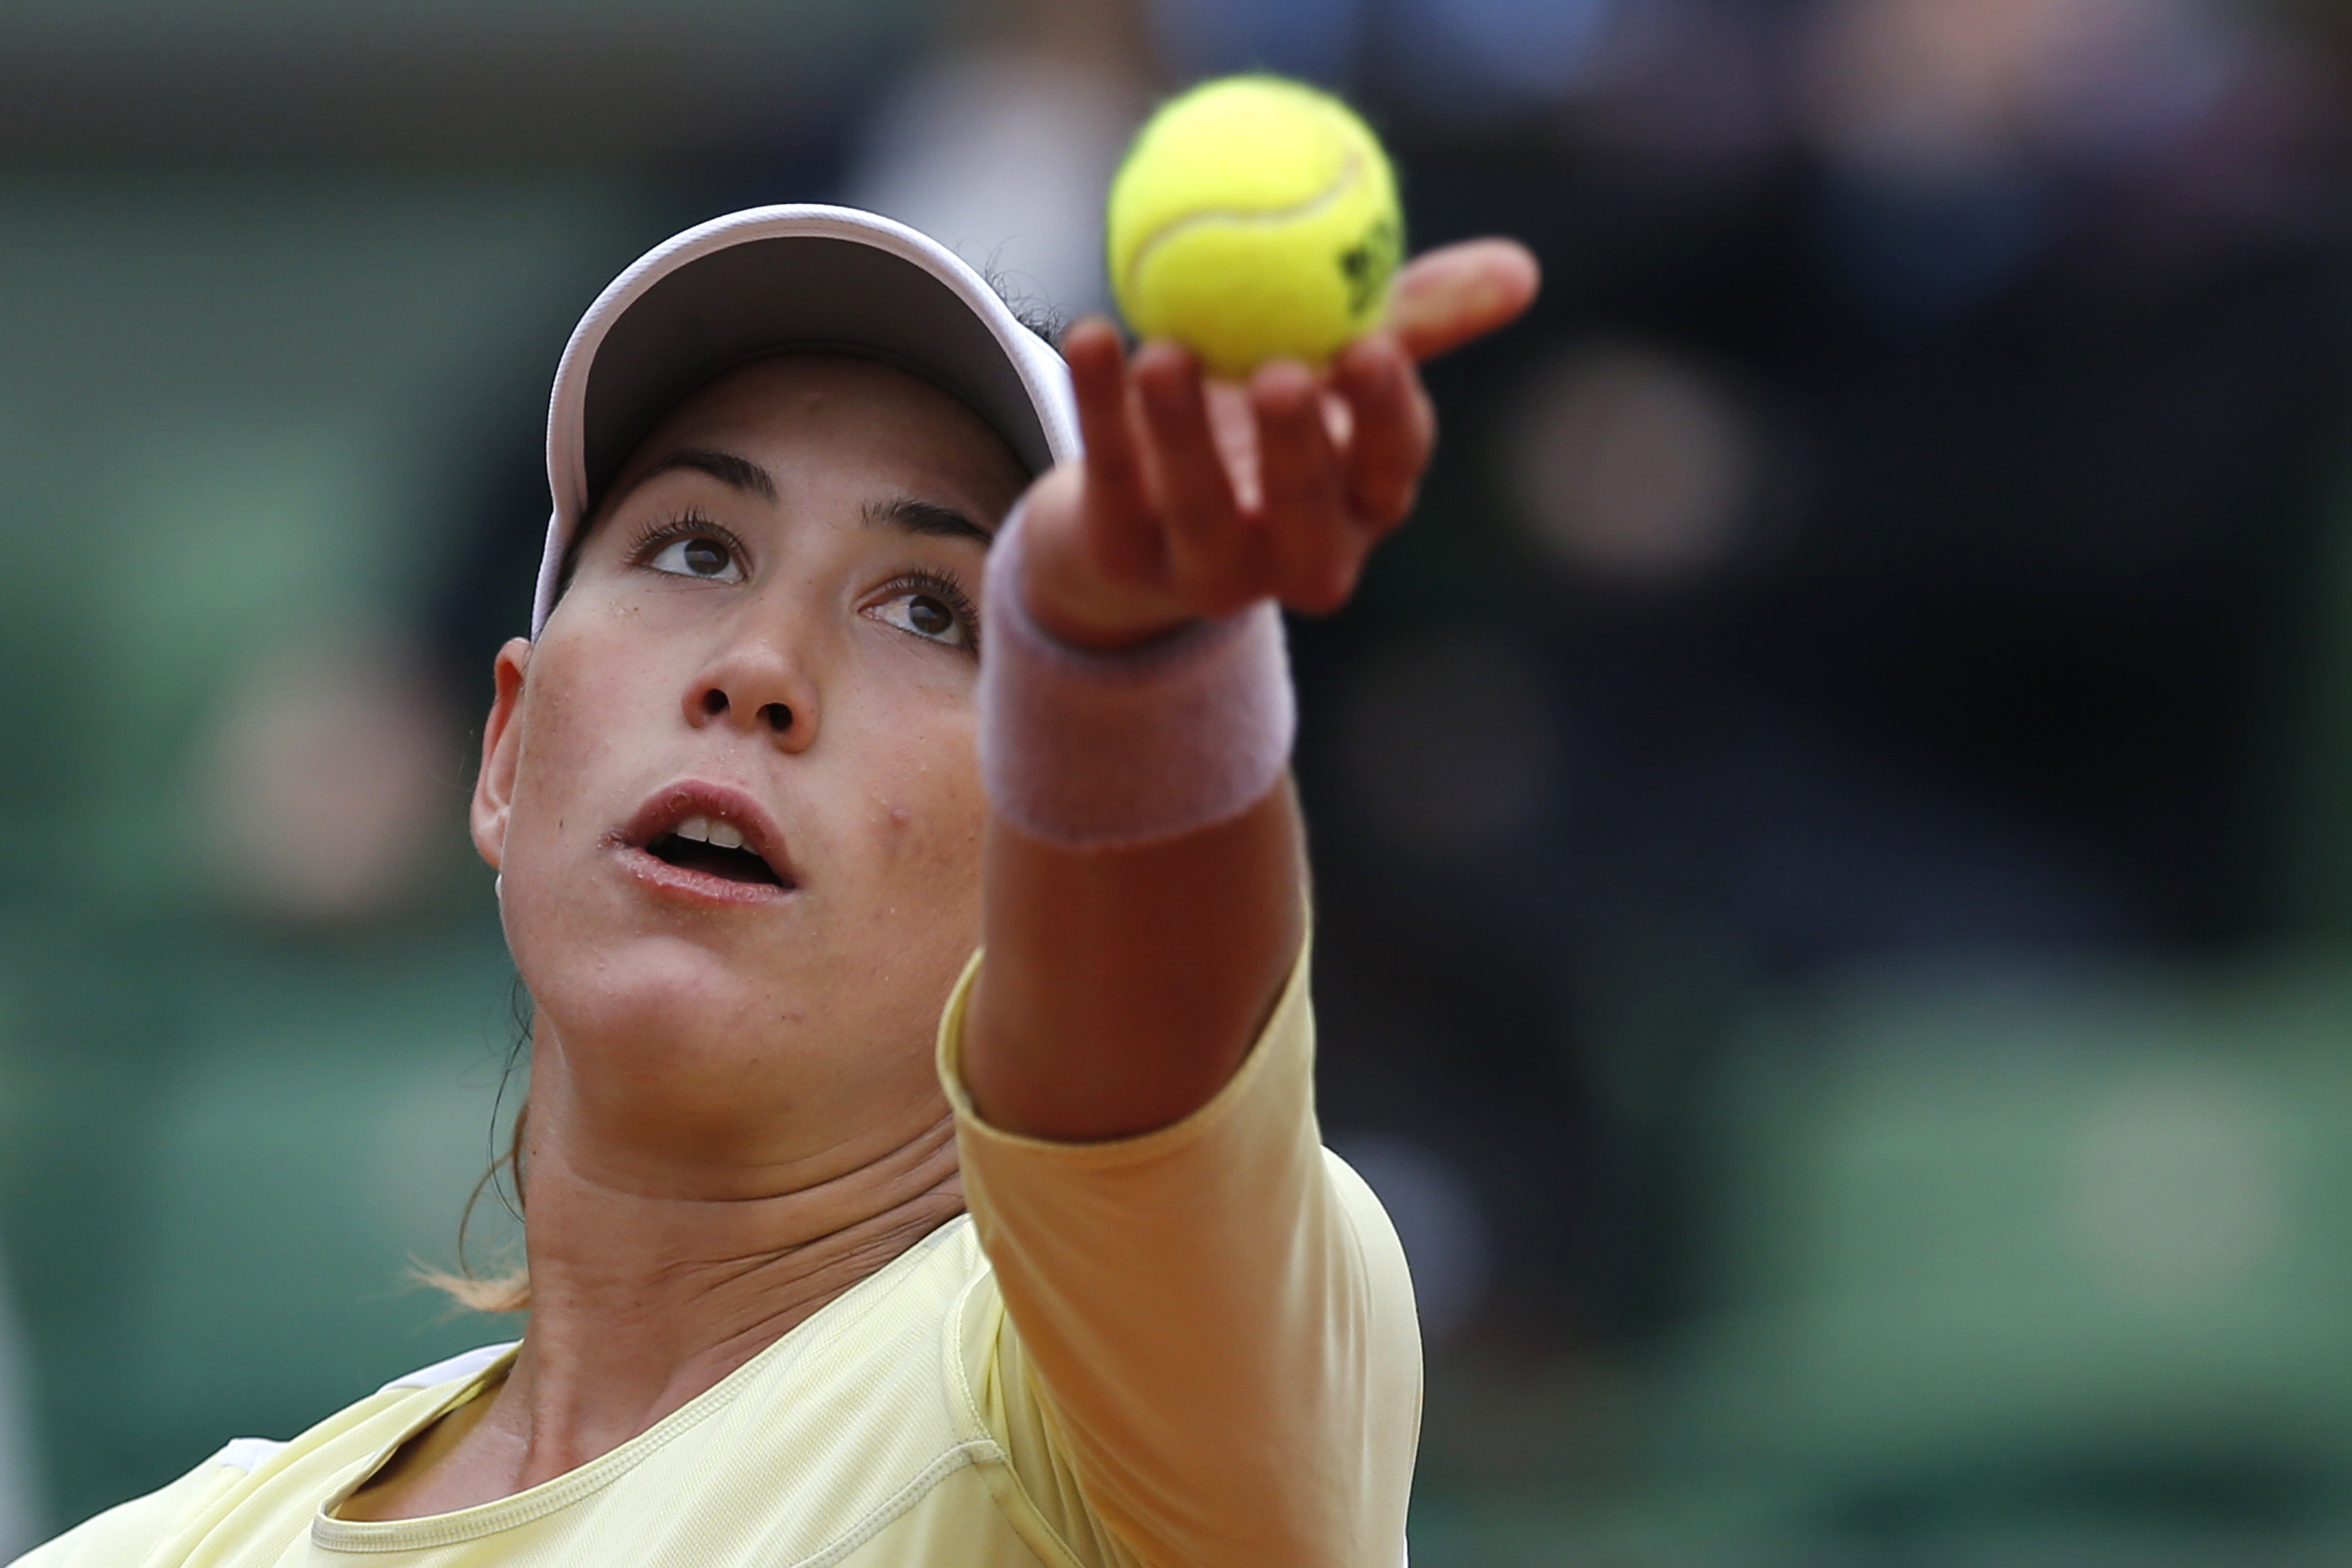 Spain's Garbine Muguruza serves the ball to Russia's Svetlana Kuznetsova during their fourth round match of the French Open tennis tournament at the Roland Garros stadium, Sunday, May 29, 2016 in Paris.  (AP Photo/Alastair Grant)